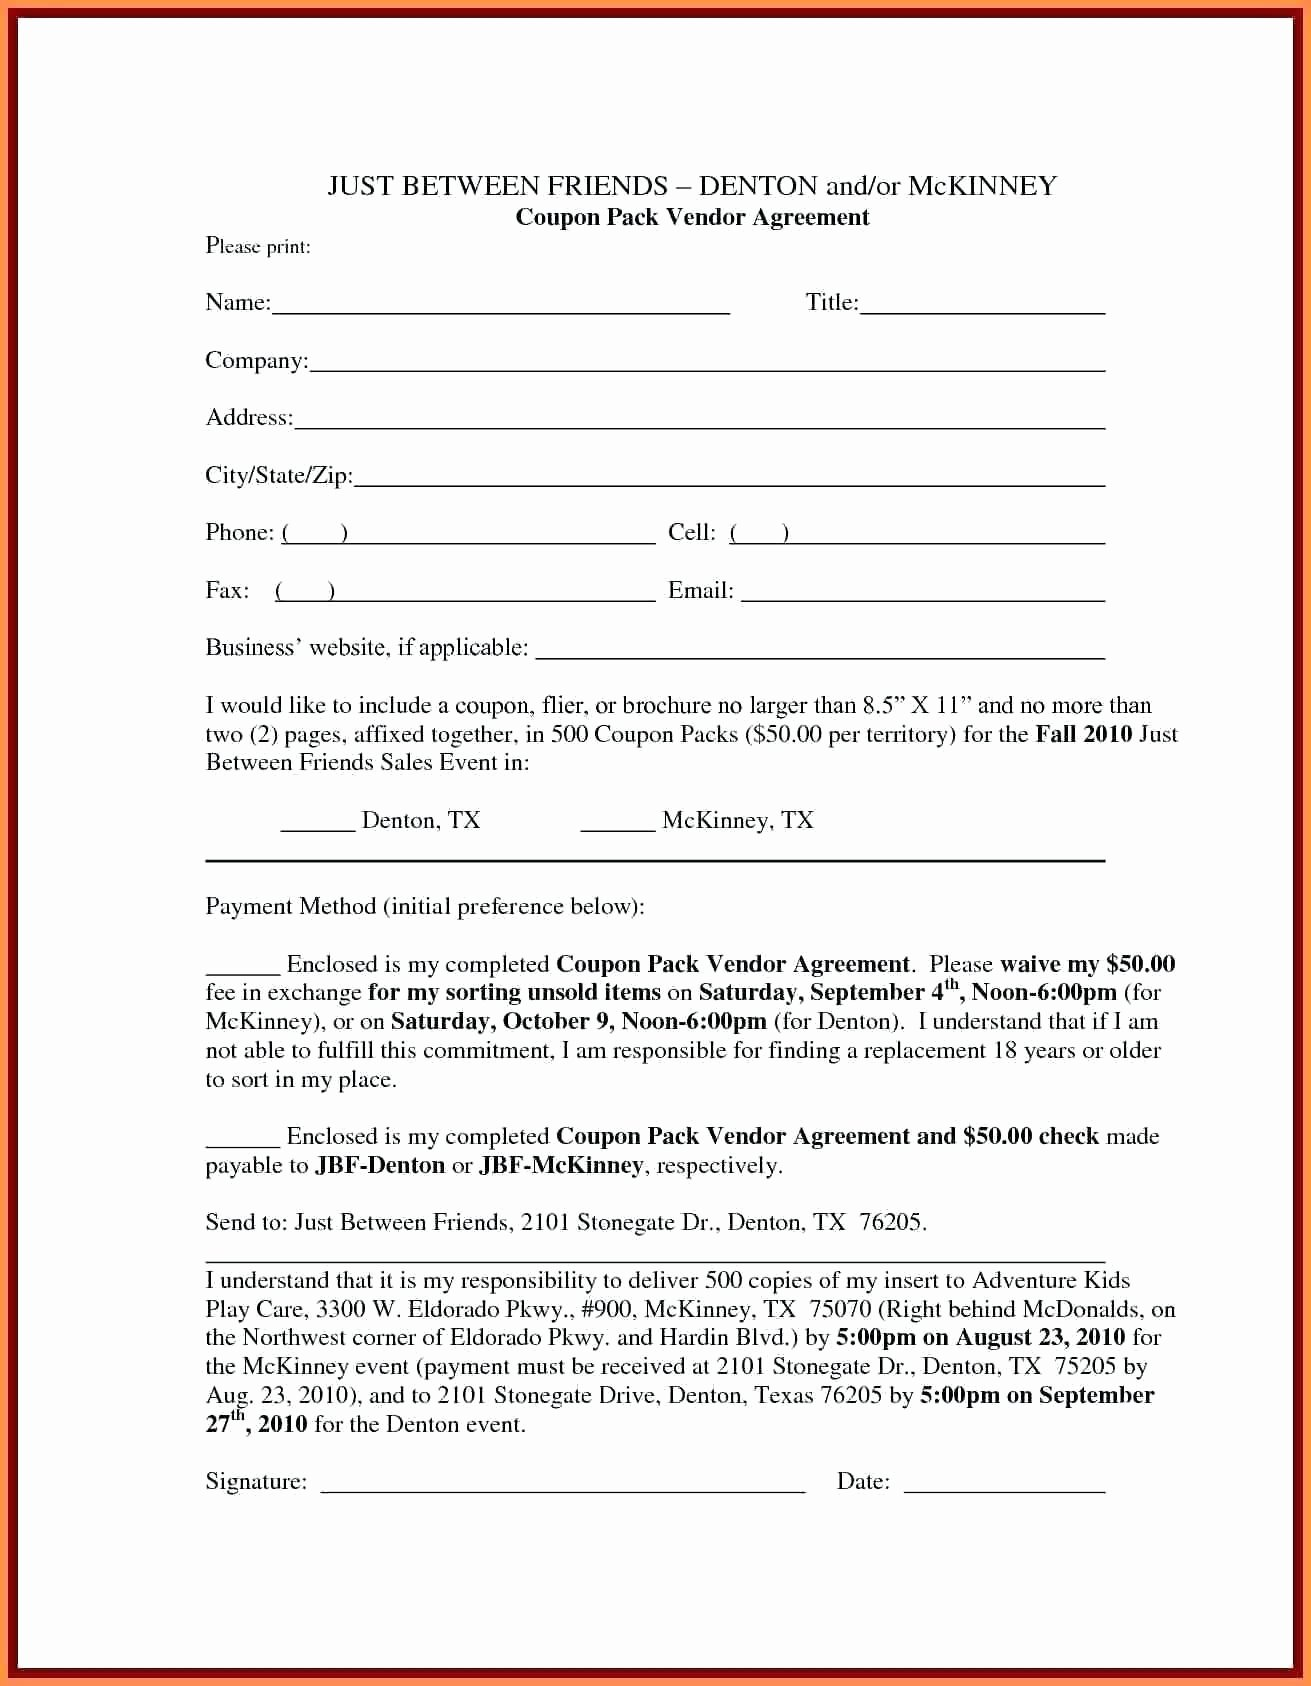 Intra Family Loan Agreement Template Fresh Business Loan Agreement Template Free – Business Loan